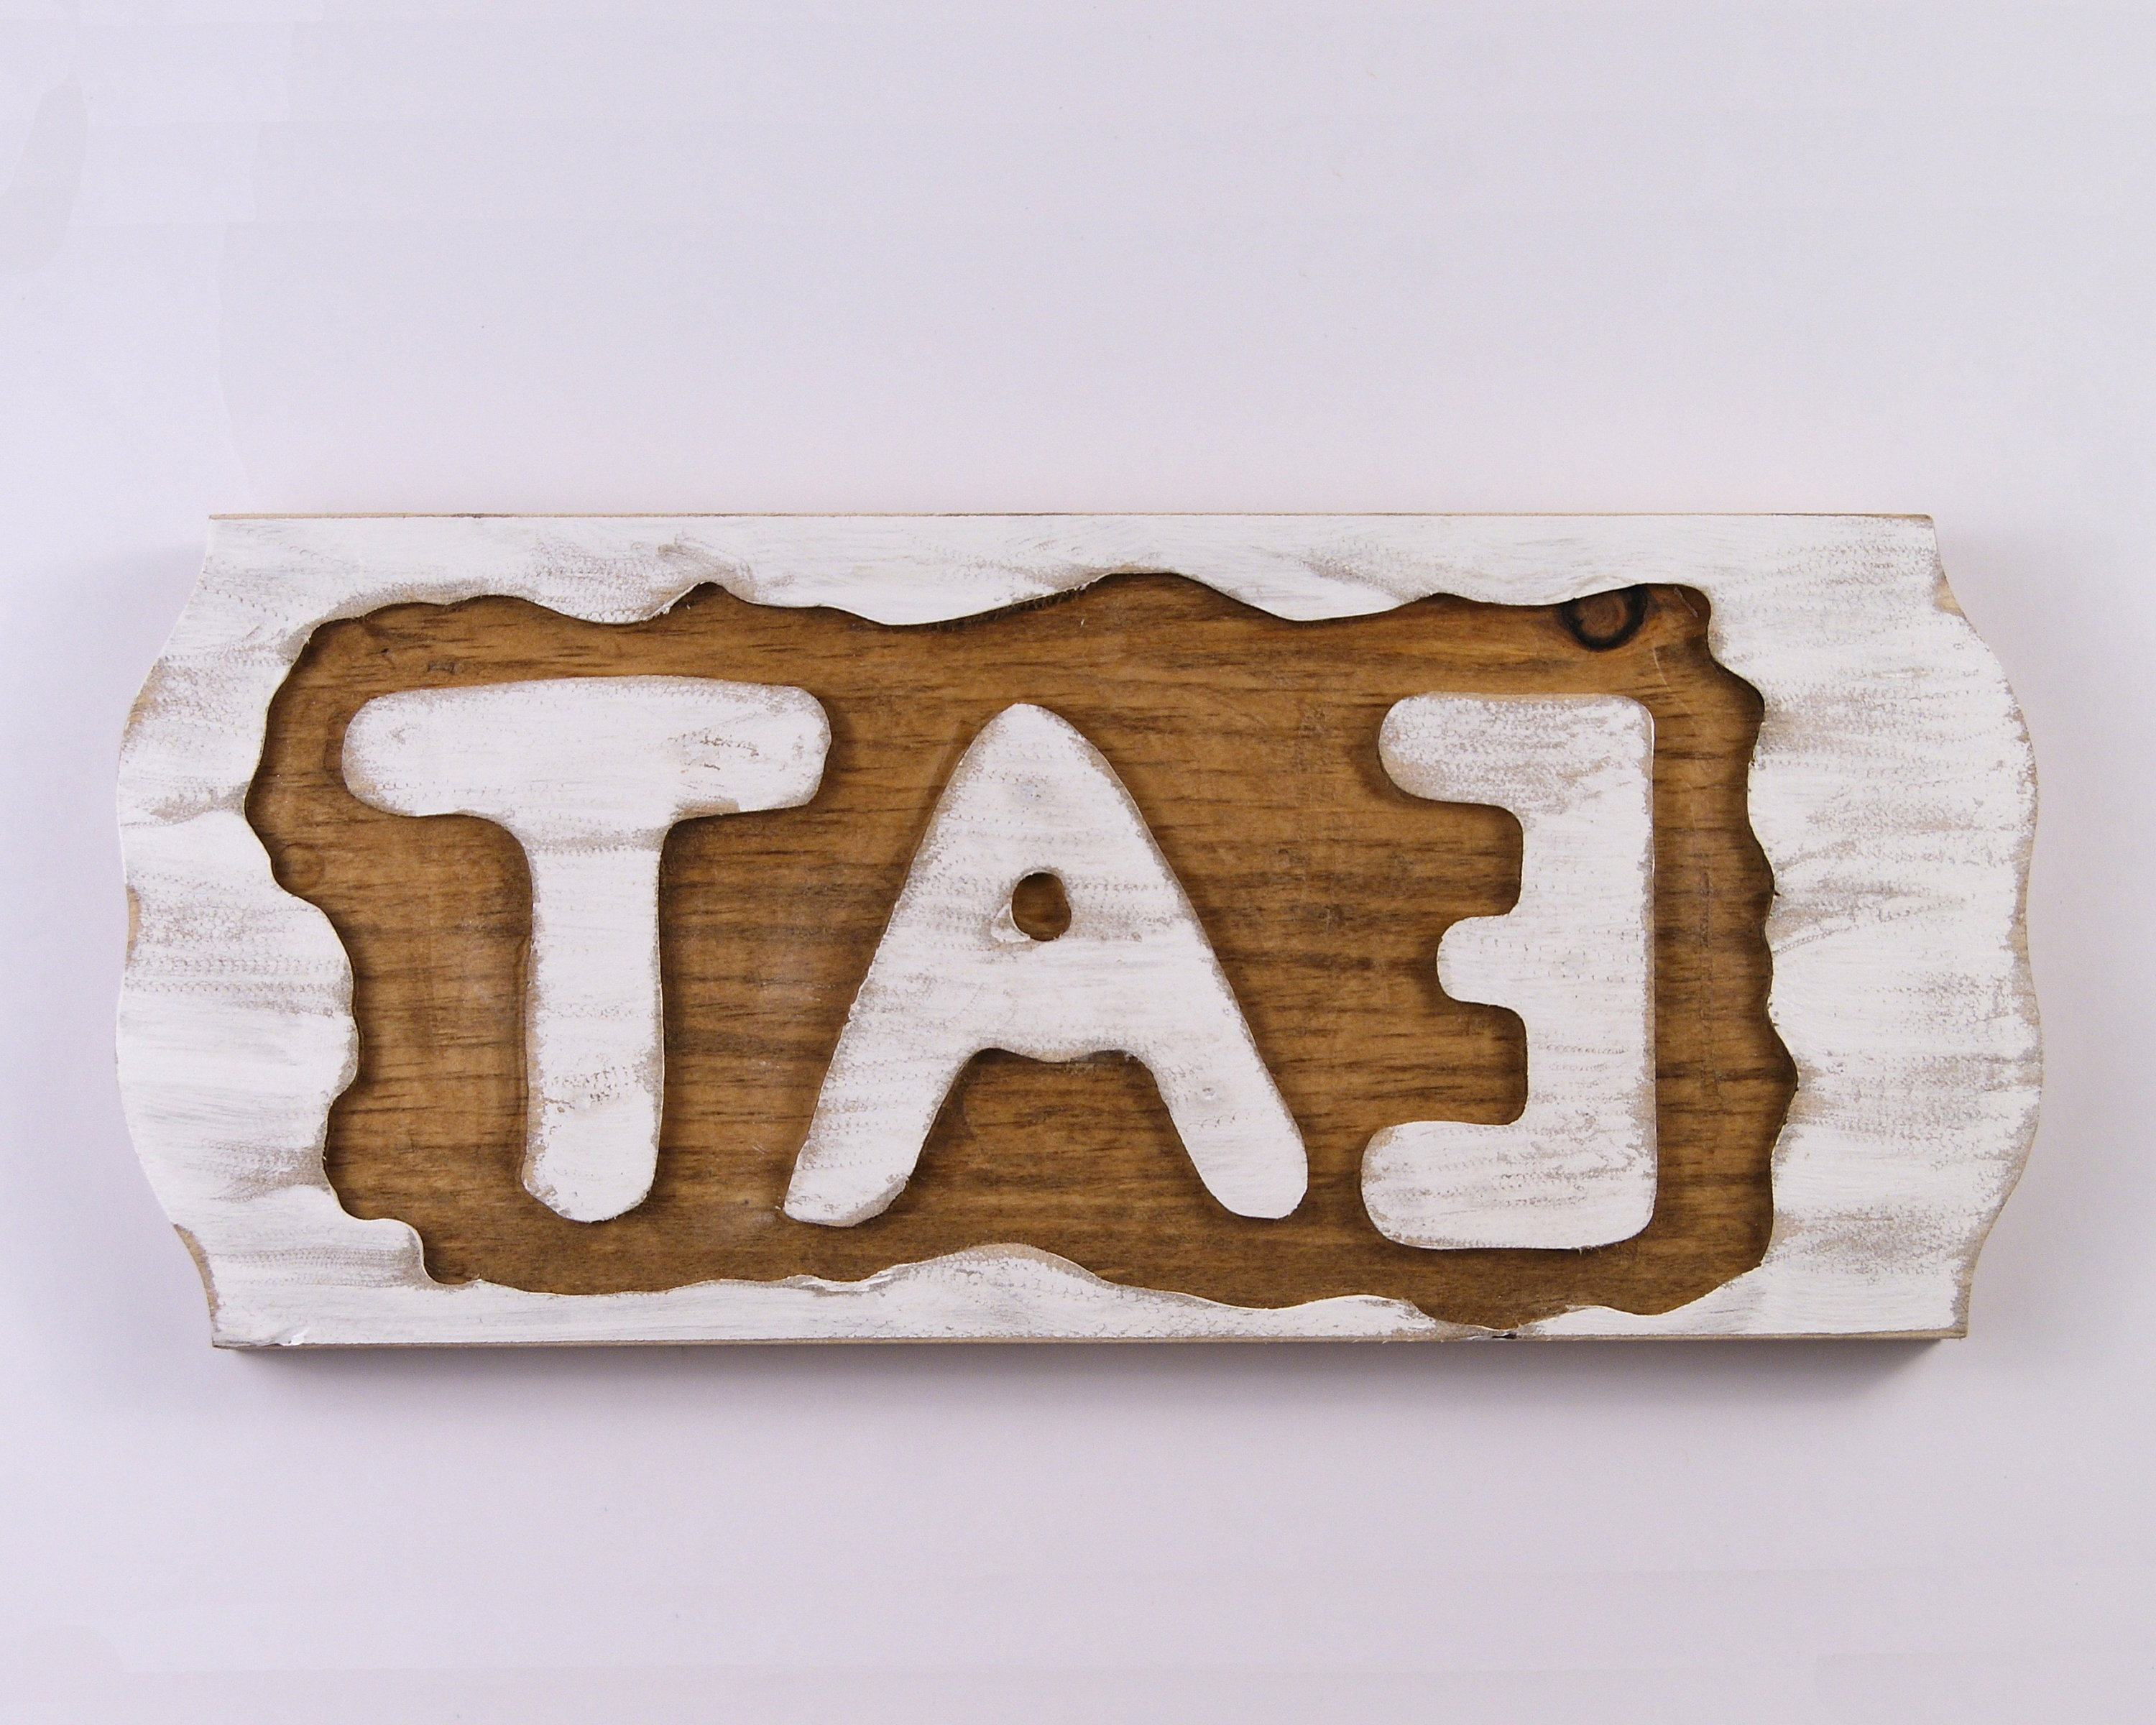 Popular Eat Sign, Rustic White Wall Hanging, Reclaimed Wood Wall Hanging Within Eat Rustic Farmhouse Wood Wall Decor (View 18 of 20)